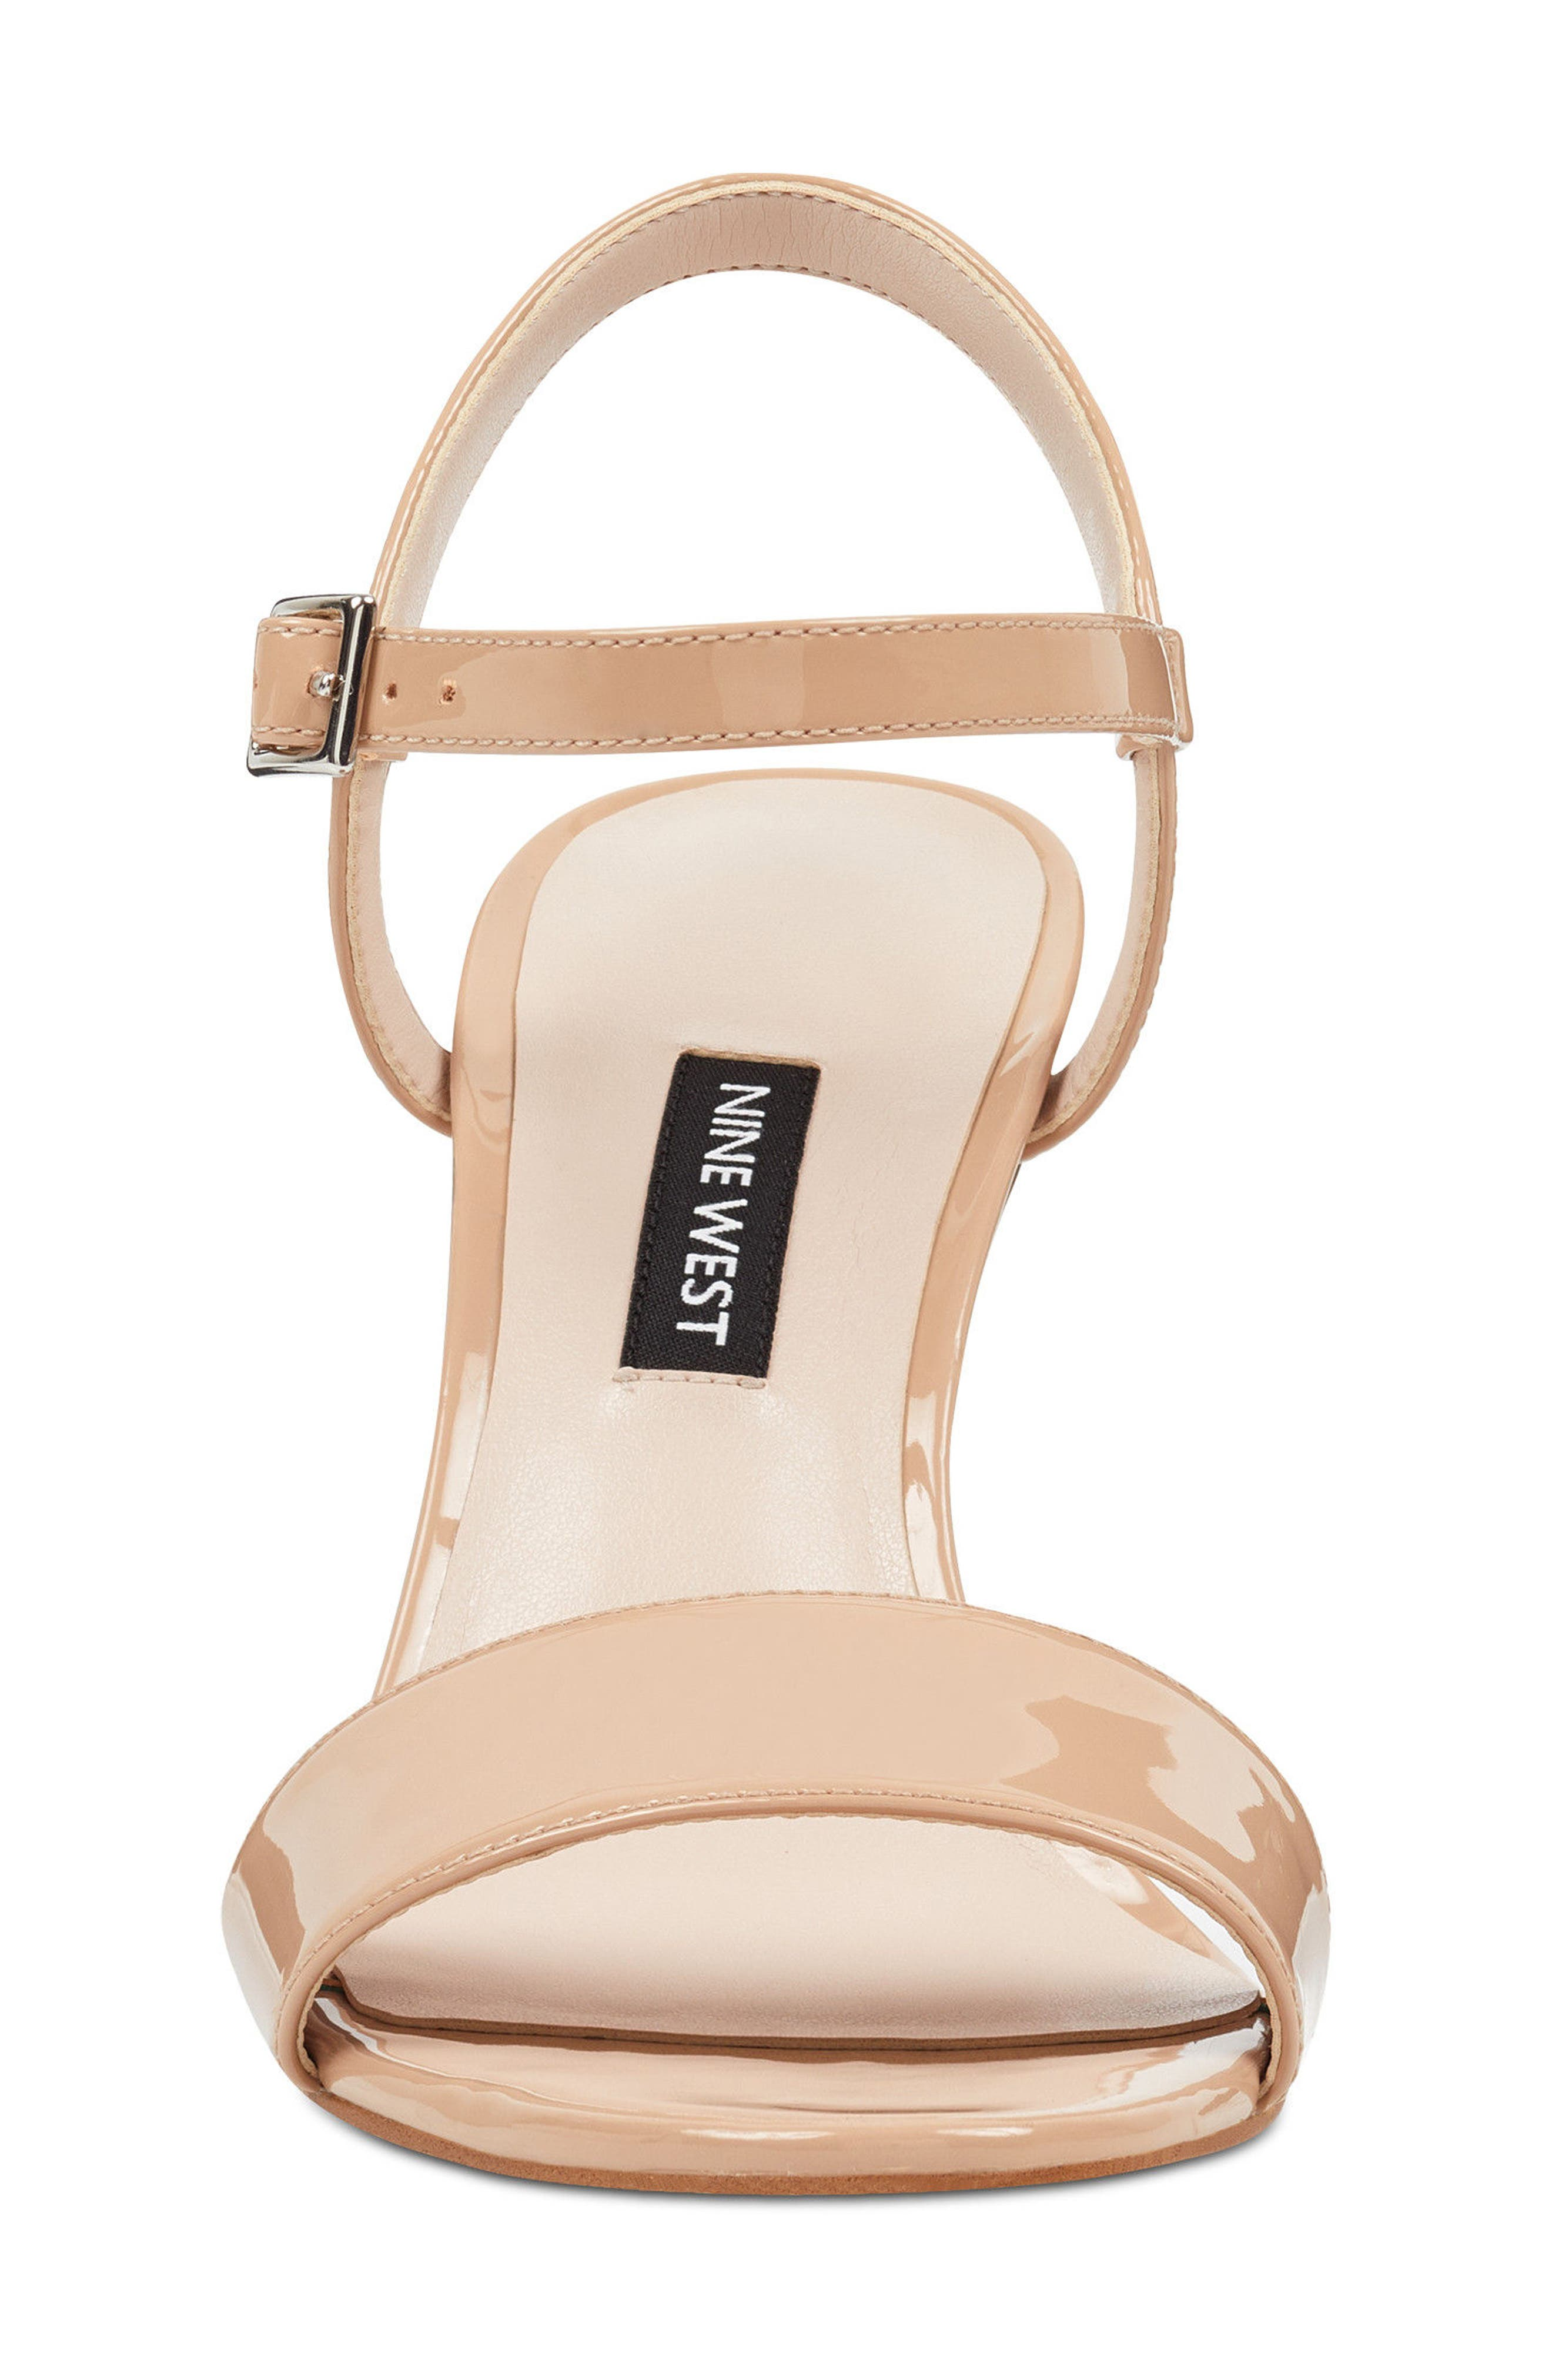 Feisty Ankle Strap Sandal,                             Alternate thumbnail 4, color,                             Nude Suede